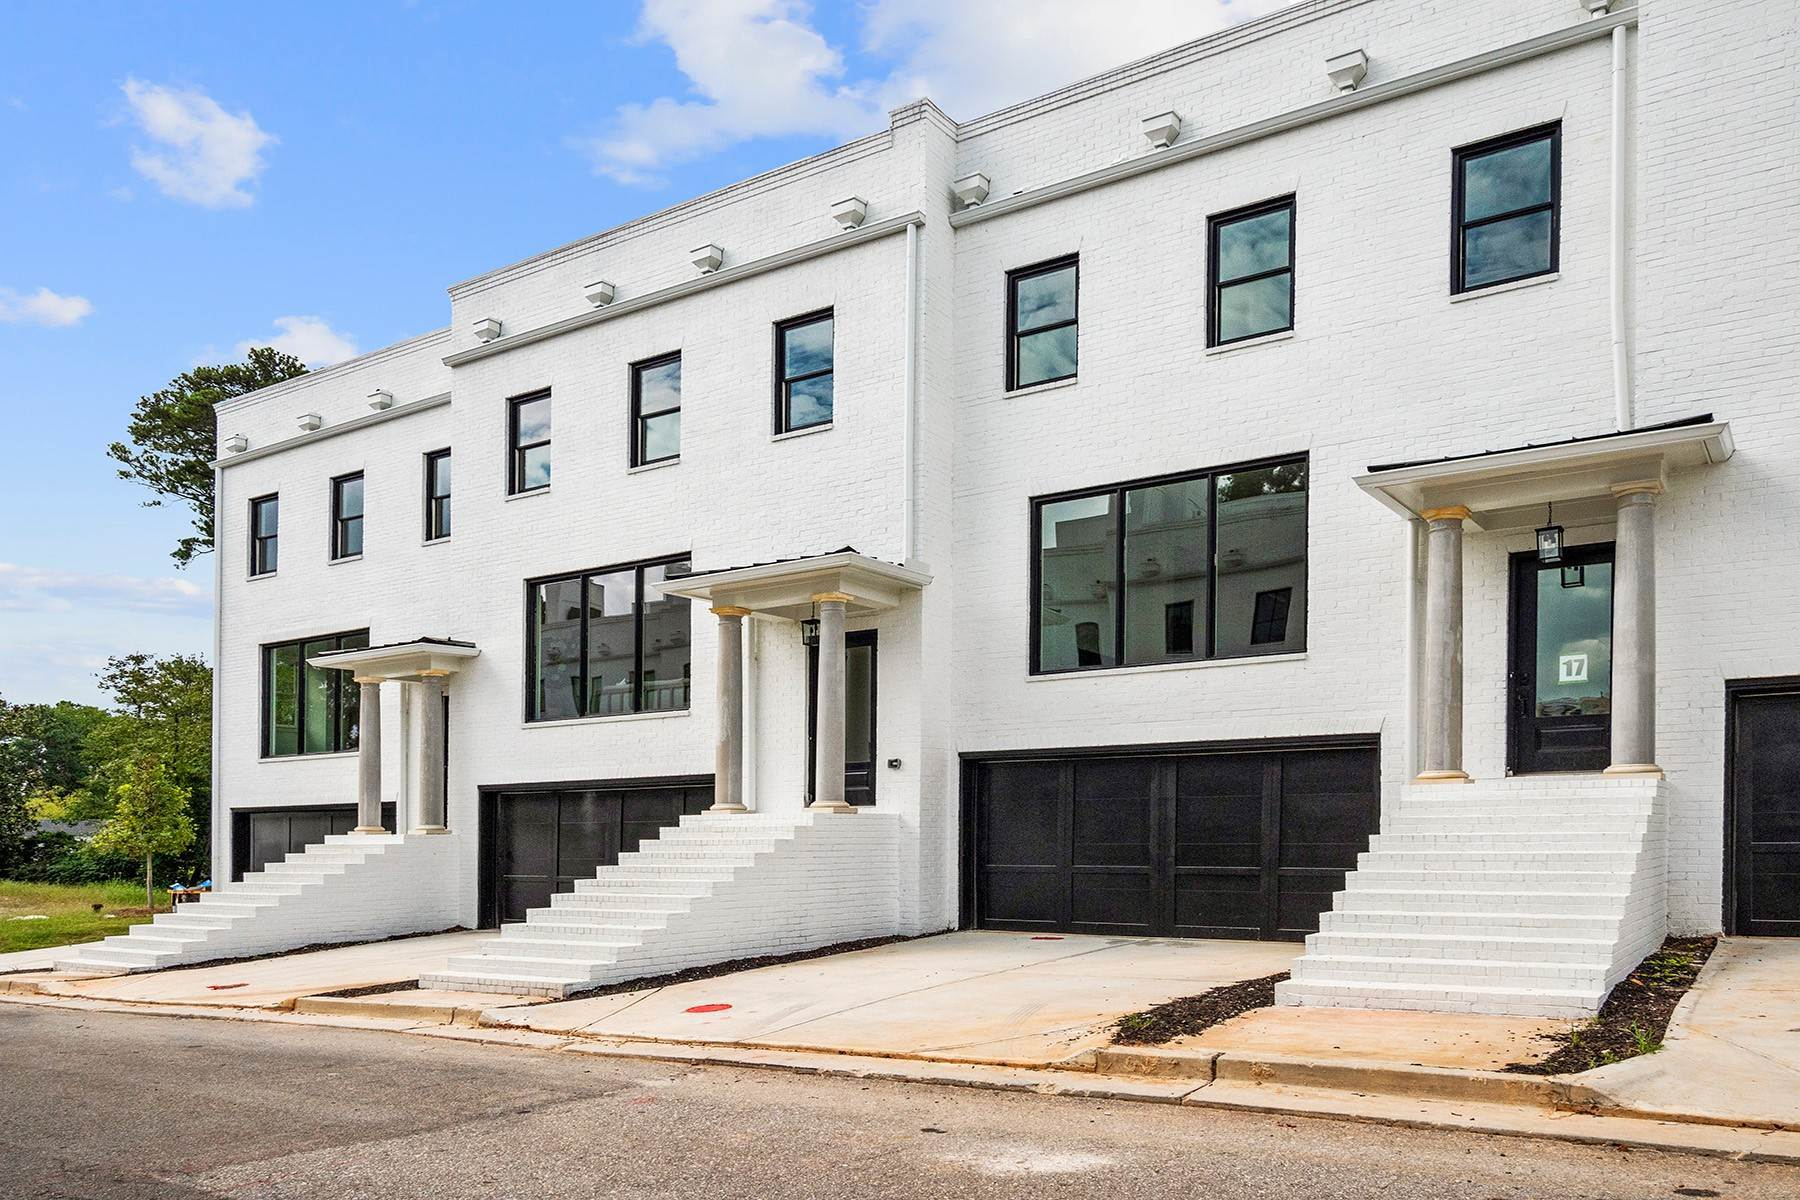 townhouses for Sale at Stunning Townhome Located in the Heart of Buckhead 3667 Peachtree Road NE, No. 17 Atlanta, Georgia 30319 United States